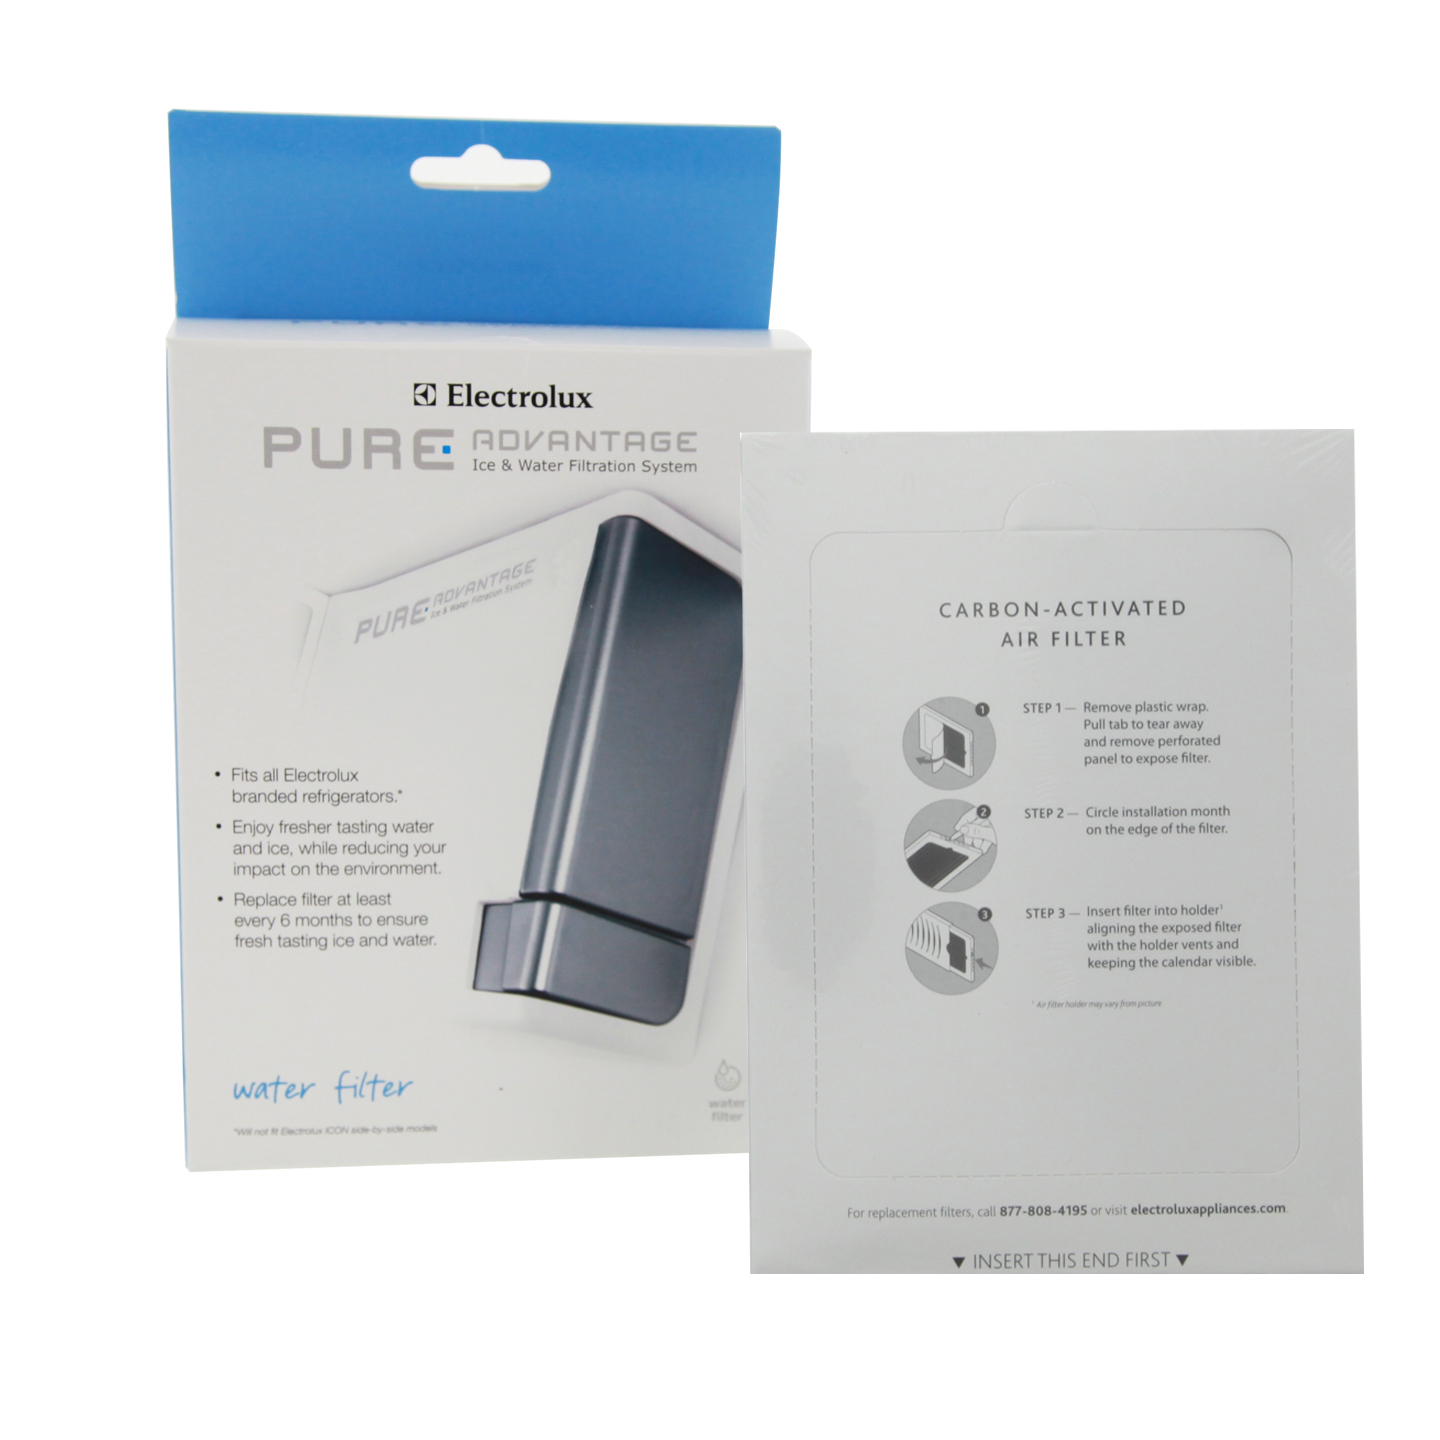 Electrolux EWF01 Pure Advantage Refrigerator Water Filter Combo with EAFCBF Air Filter ELUXCOMBO